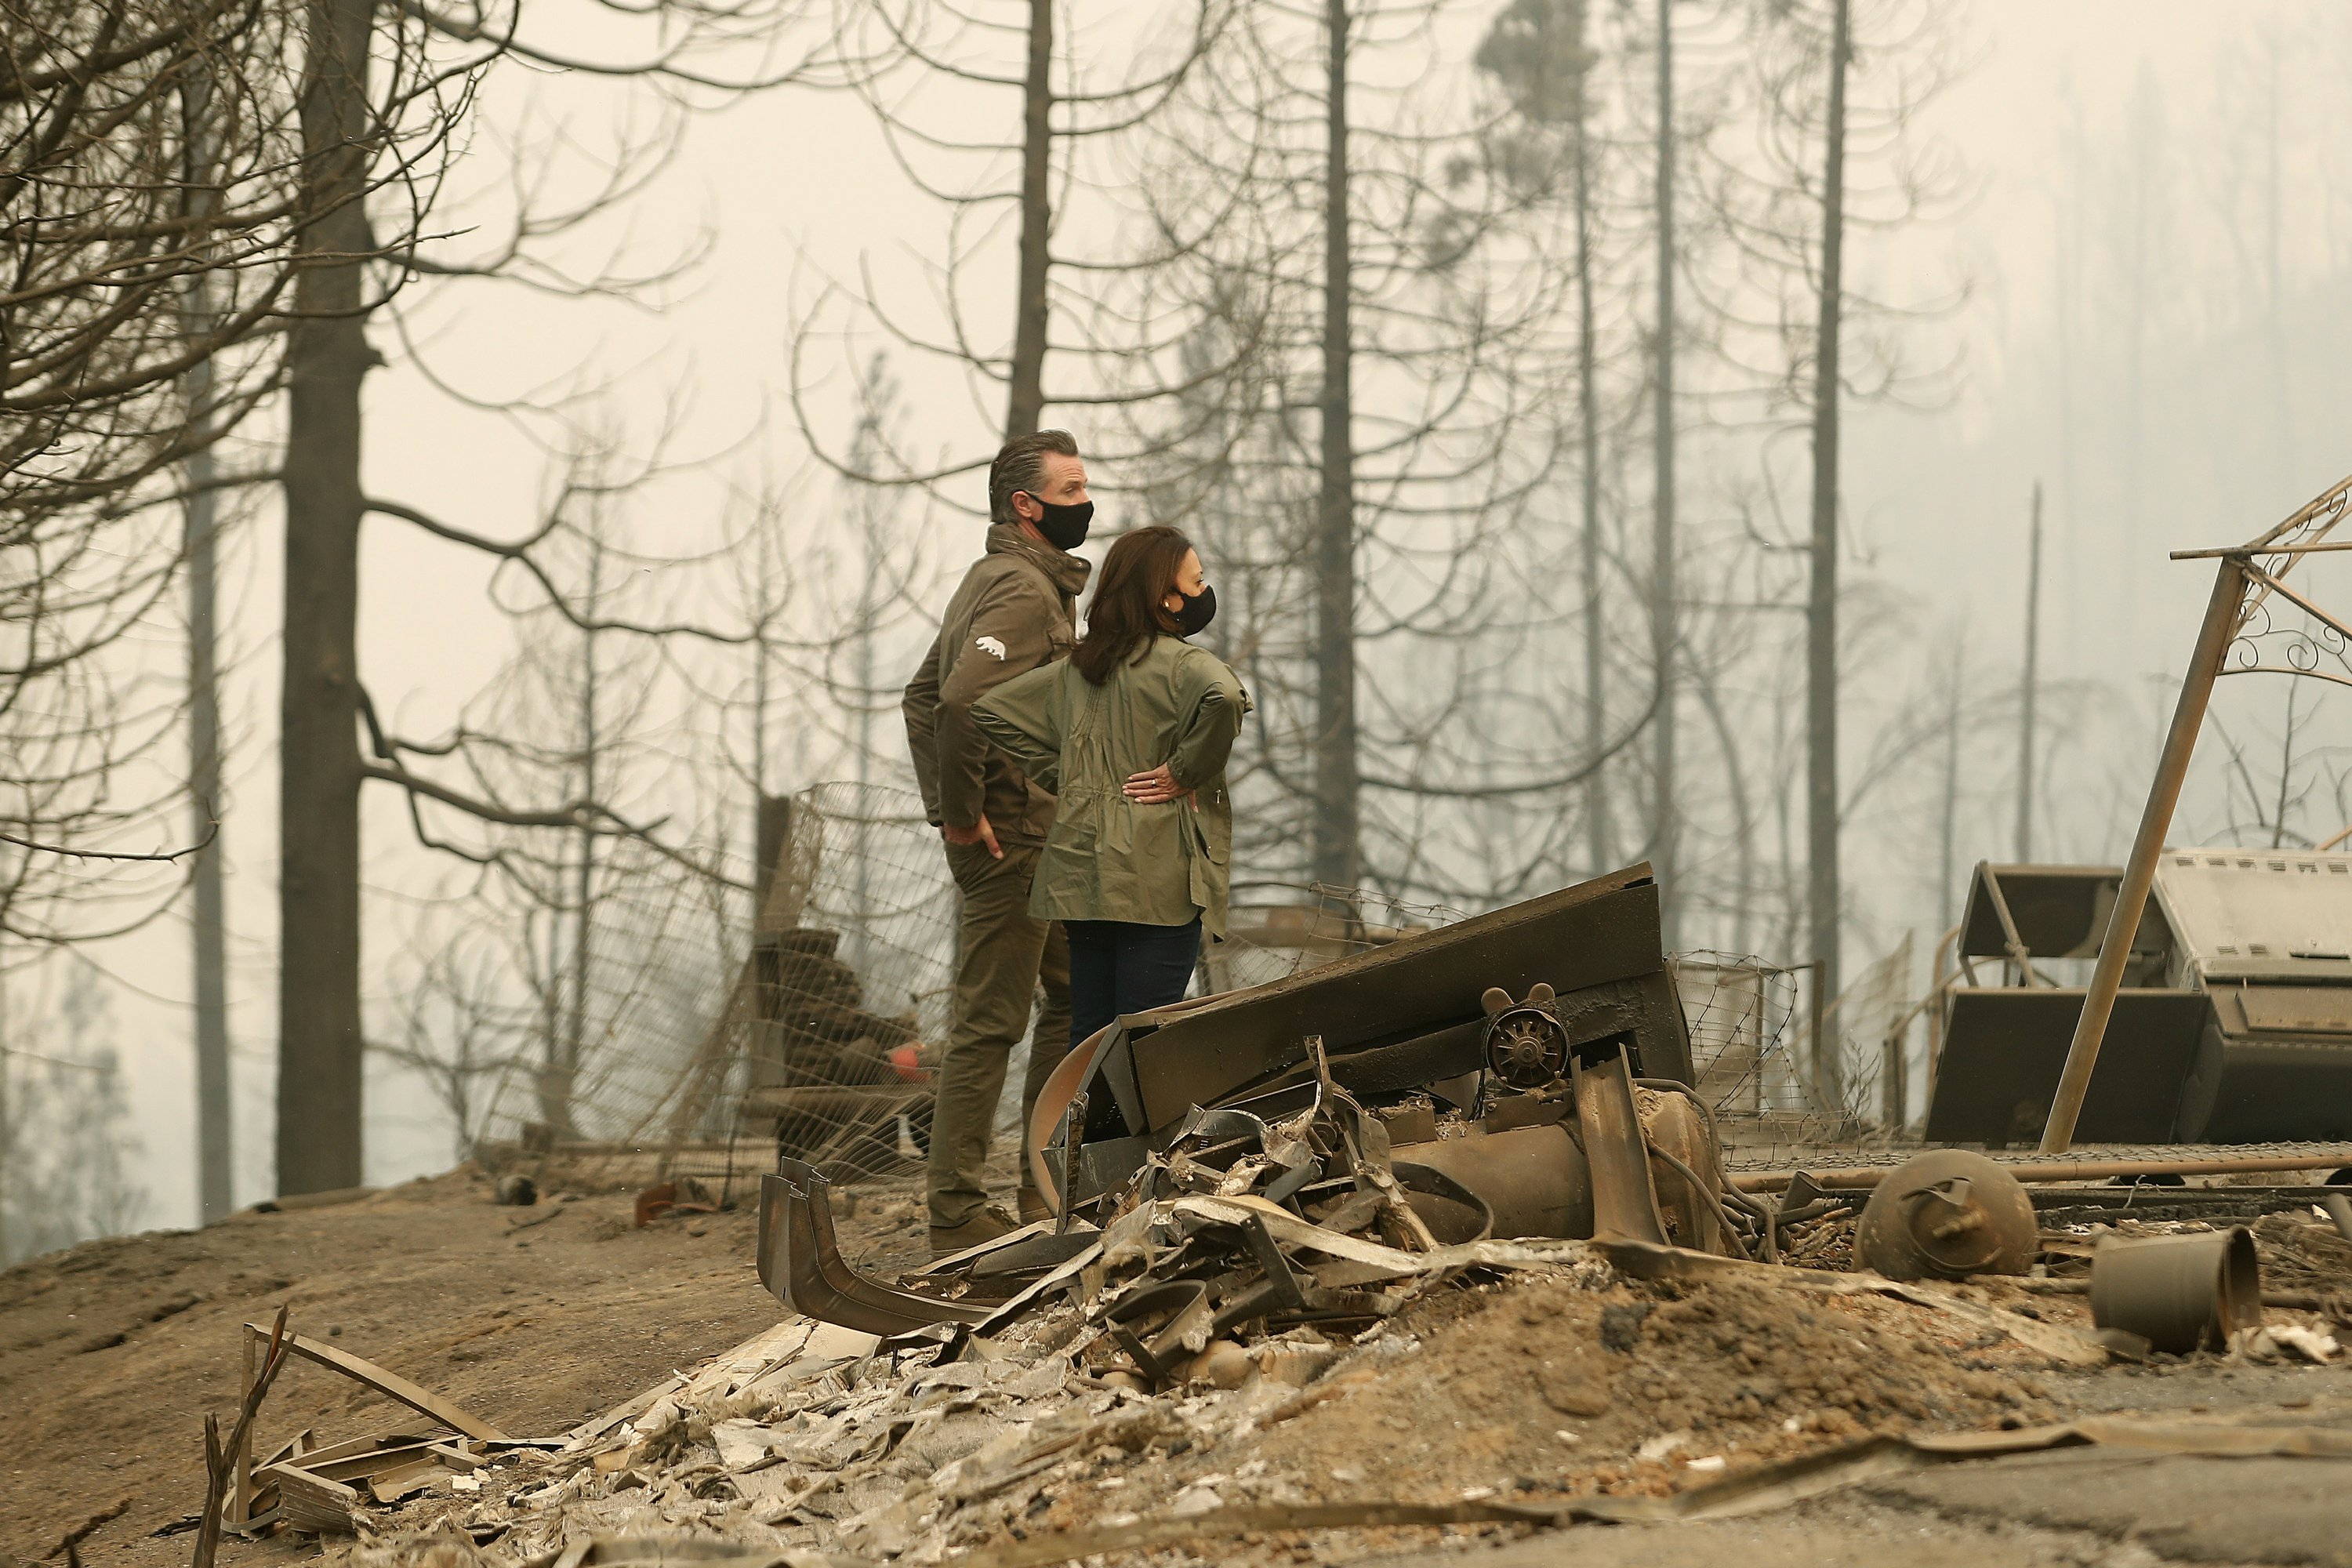 States Where Wildfires Caused the Most Damage - 24/7 Wall St. |Wildfire Damage